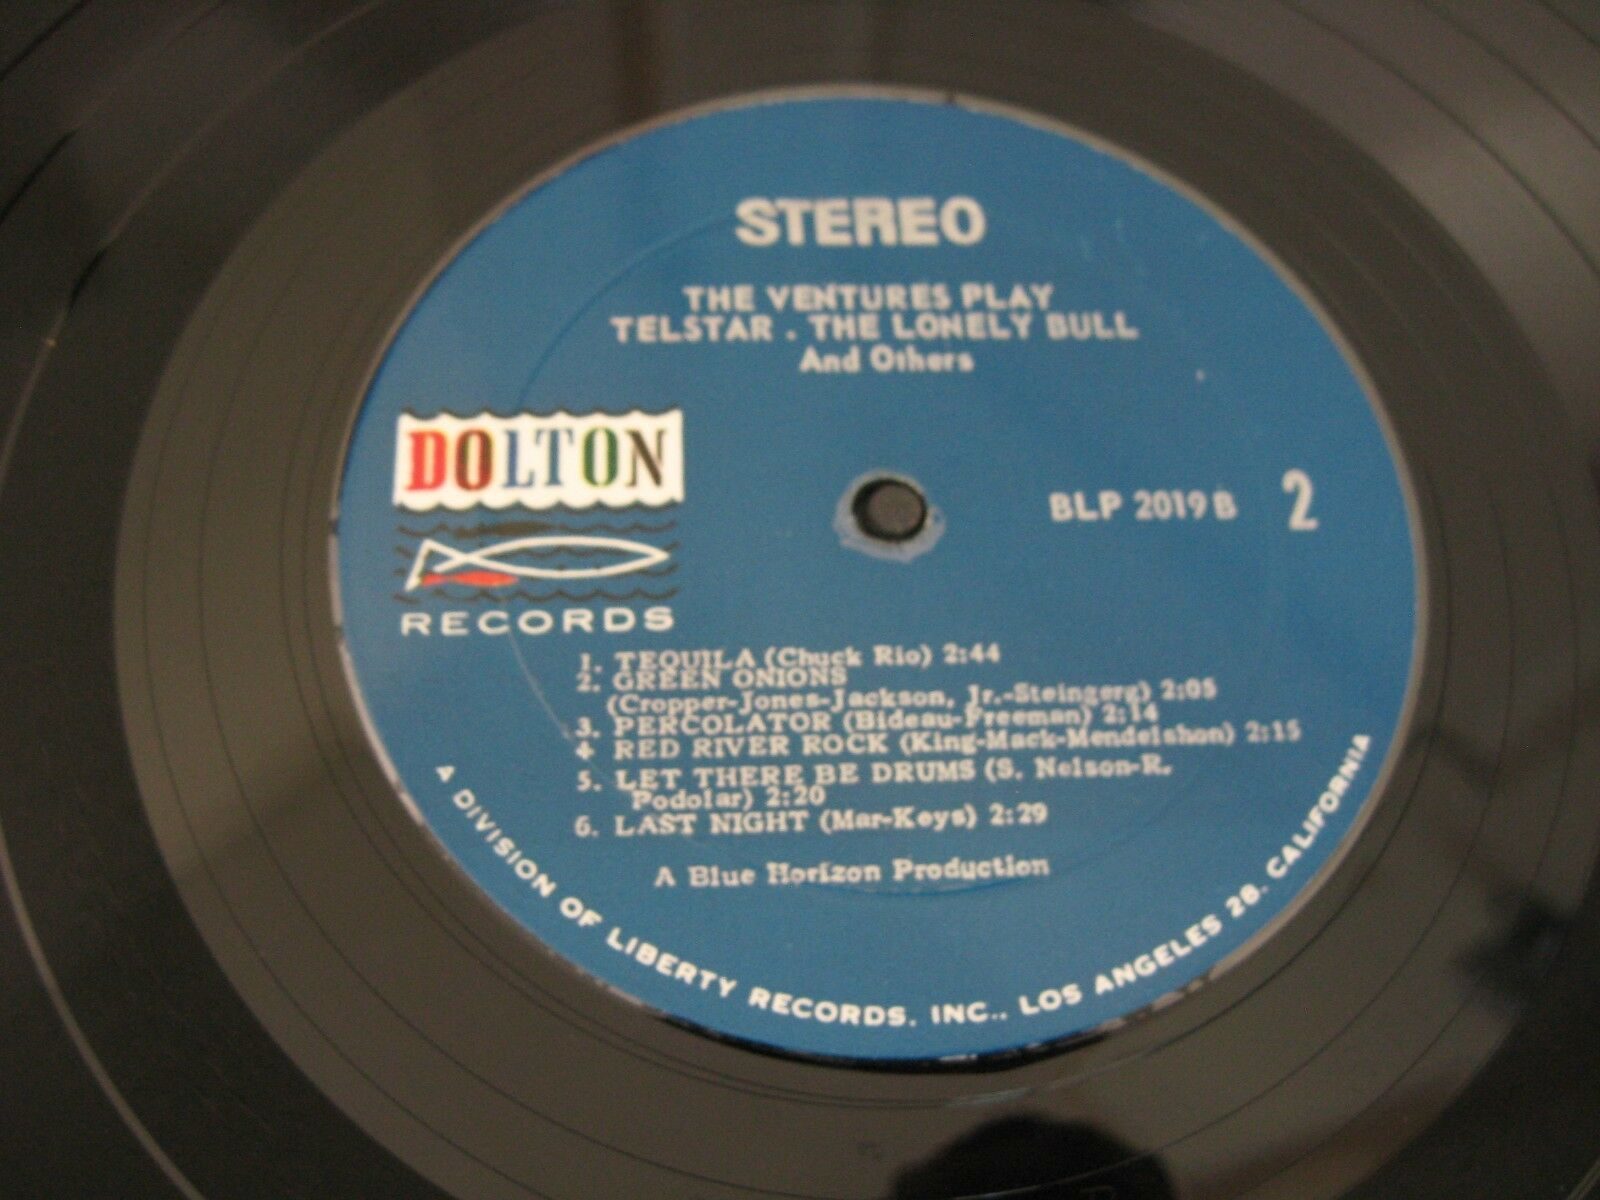 The Ventures Play Telstar Dolton BLP-2019 Stereo Vinyl LP 1st Press Rare Oddity image 5